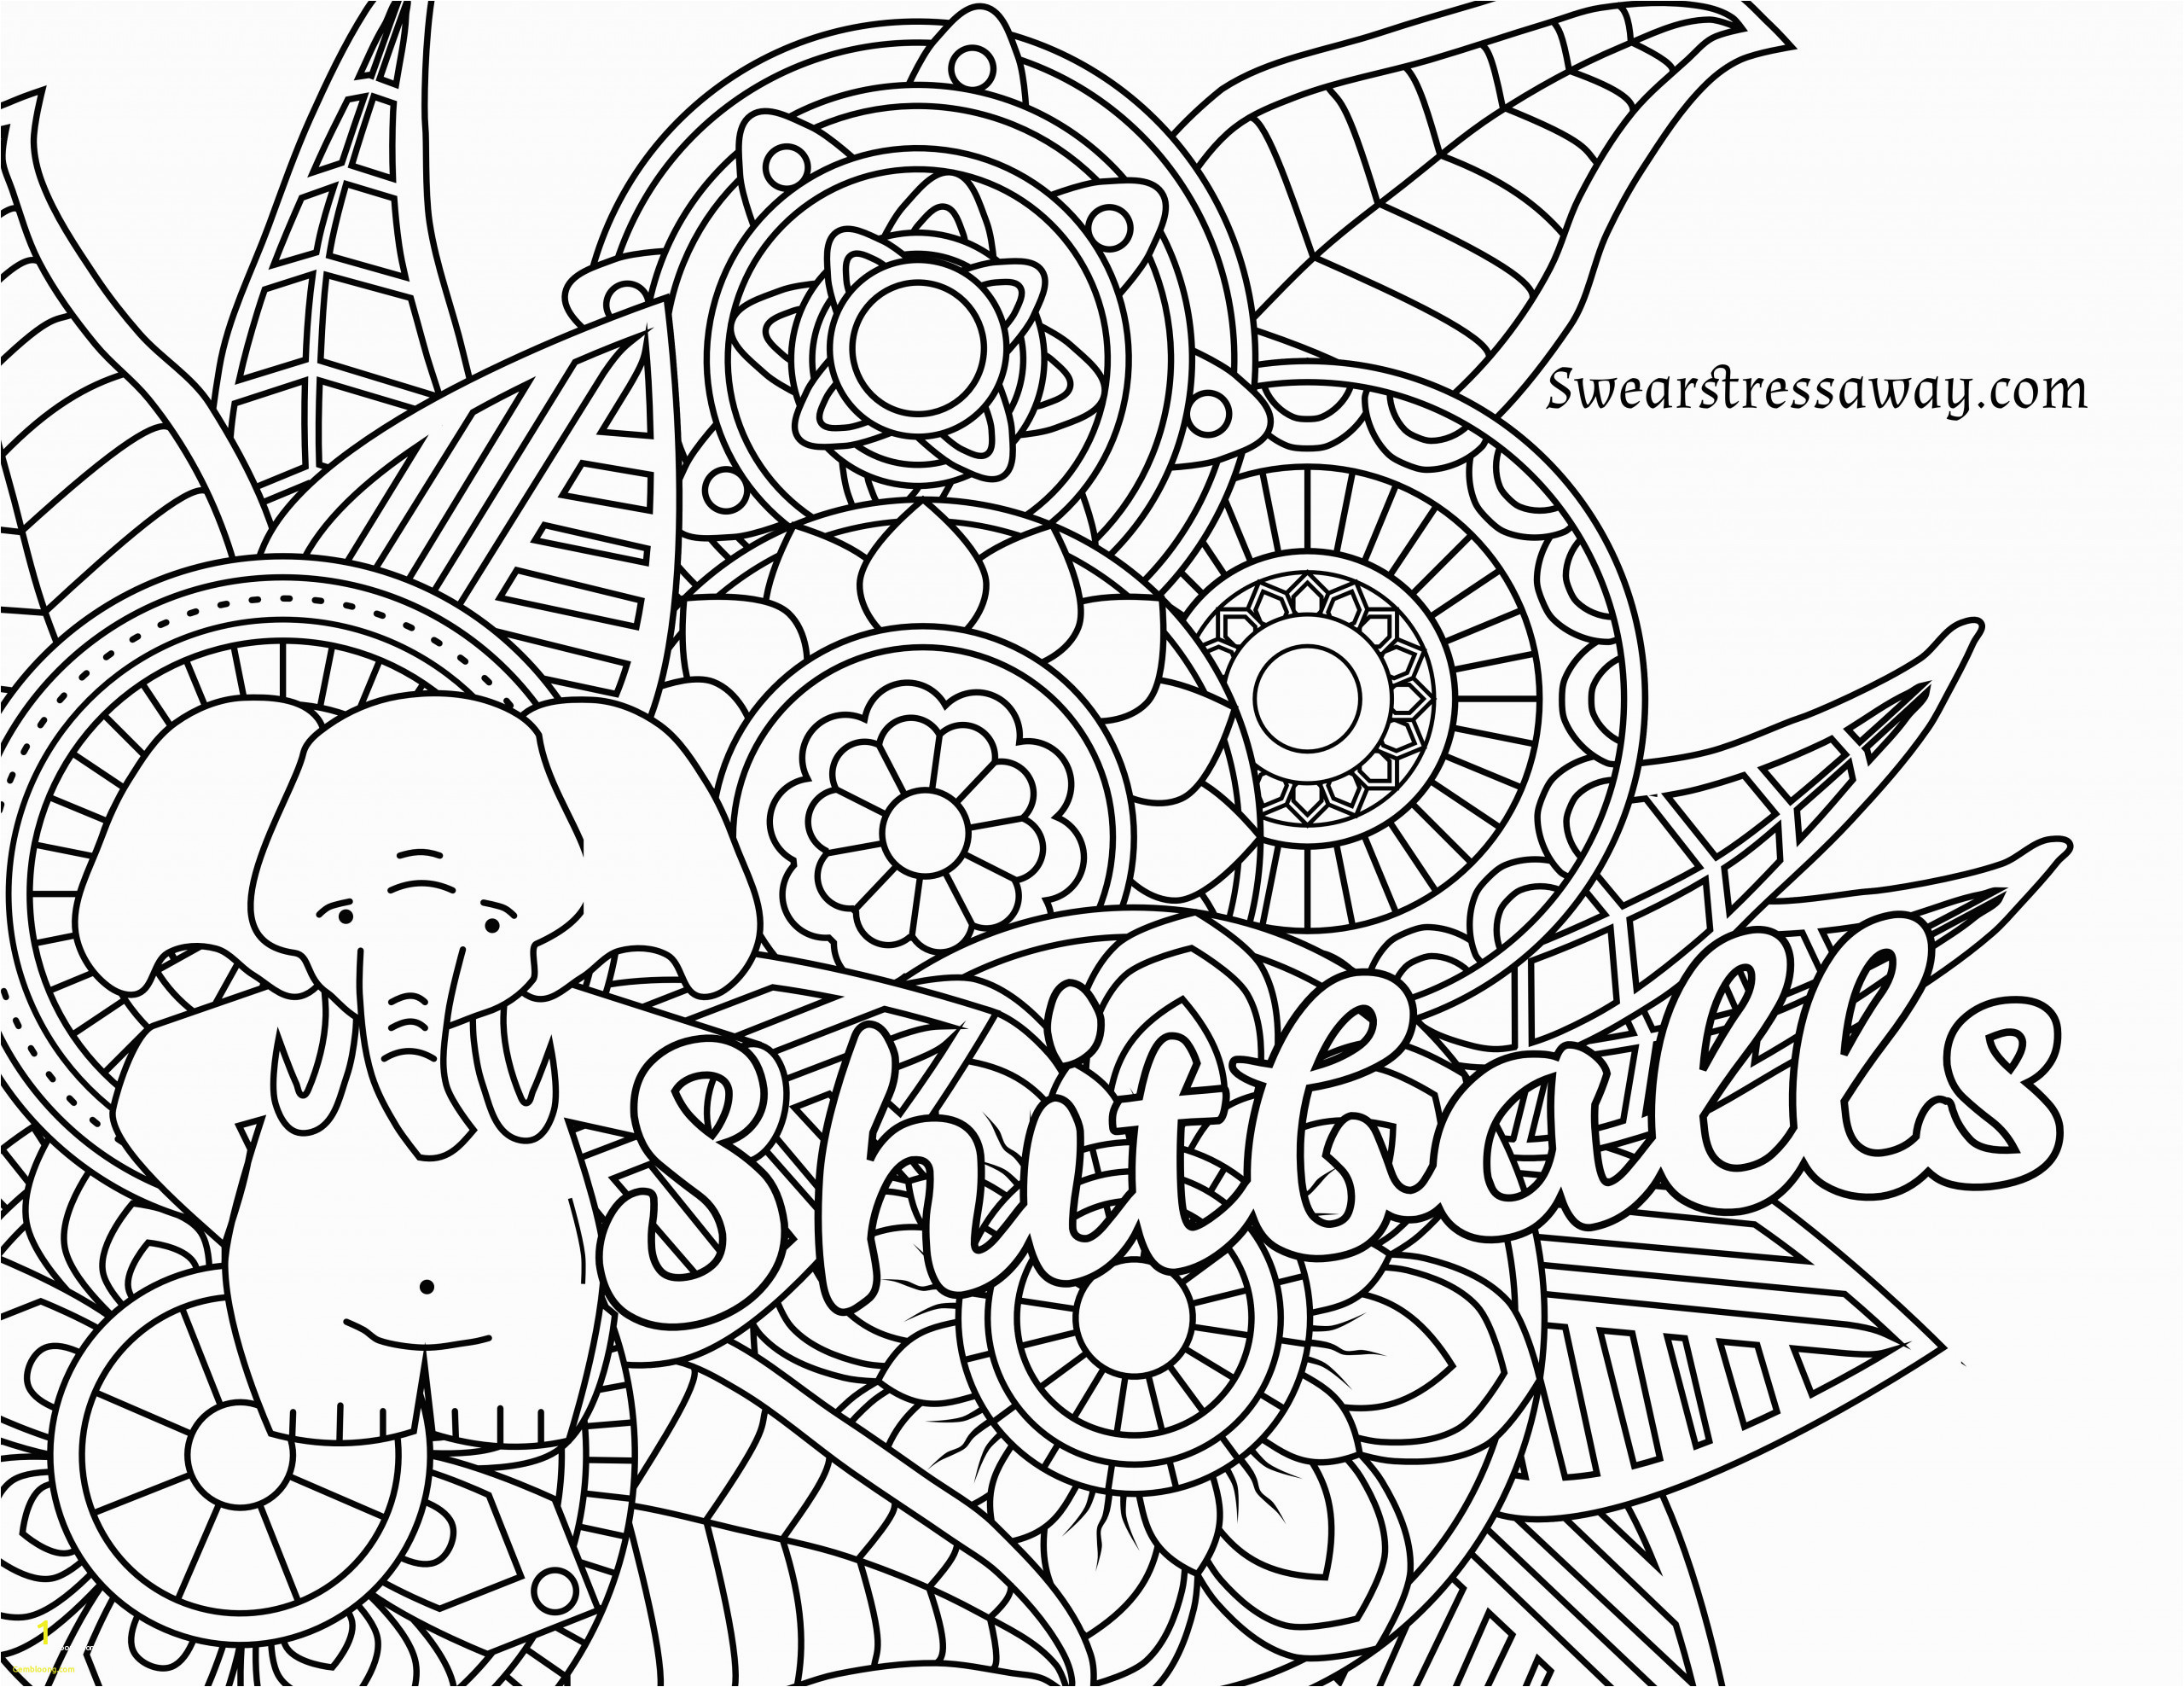 swearing coloring pages for adults luxury coloring pages coloring for adults swear words coloring of swearing coloring pages for adults